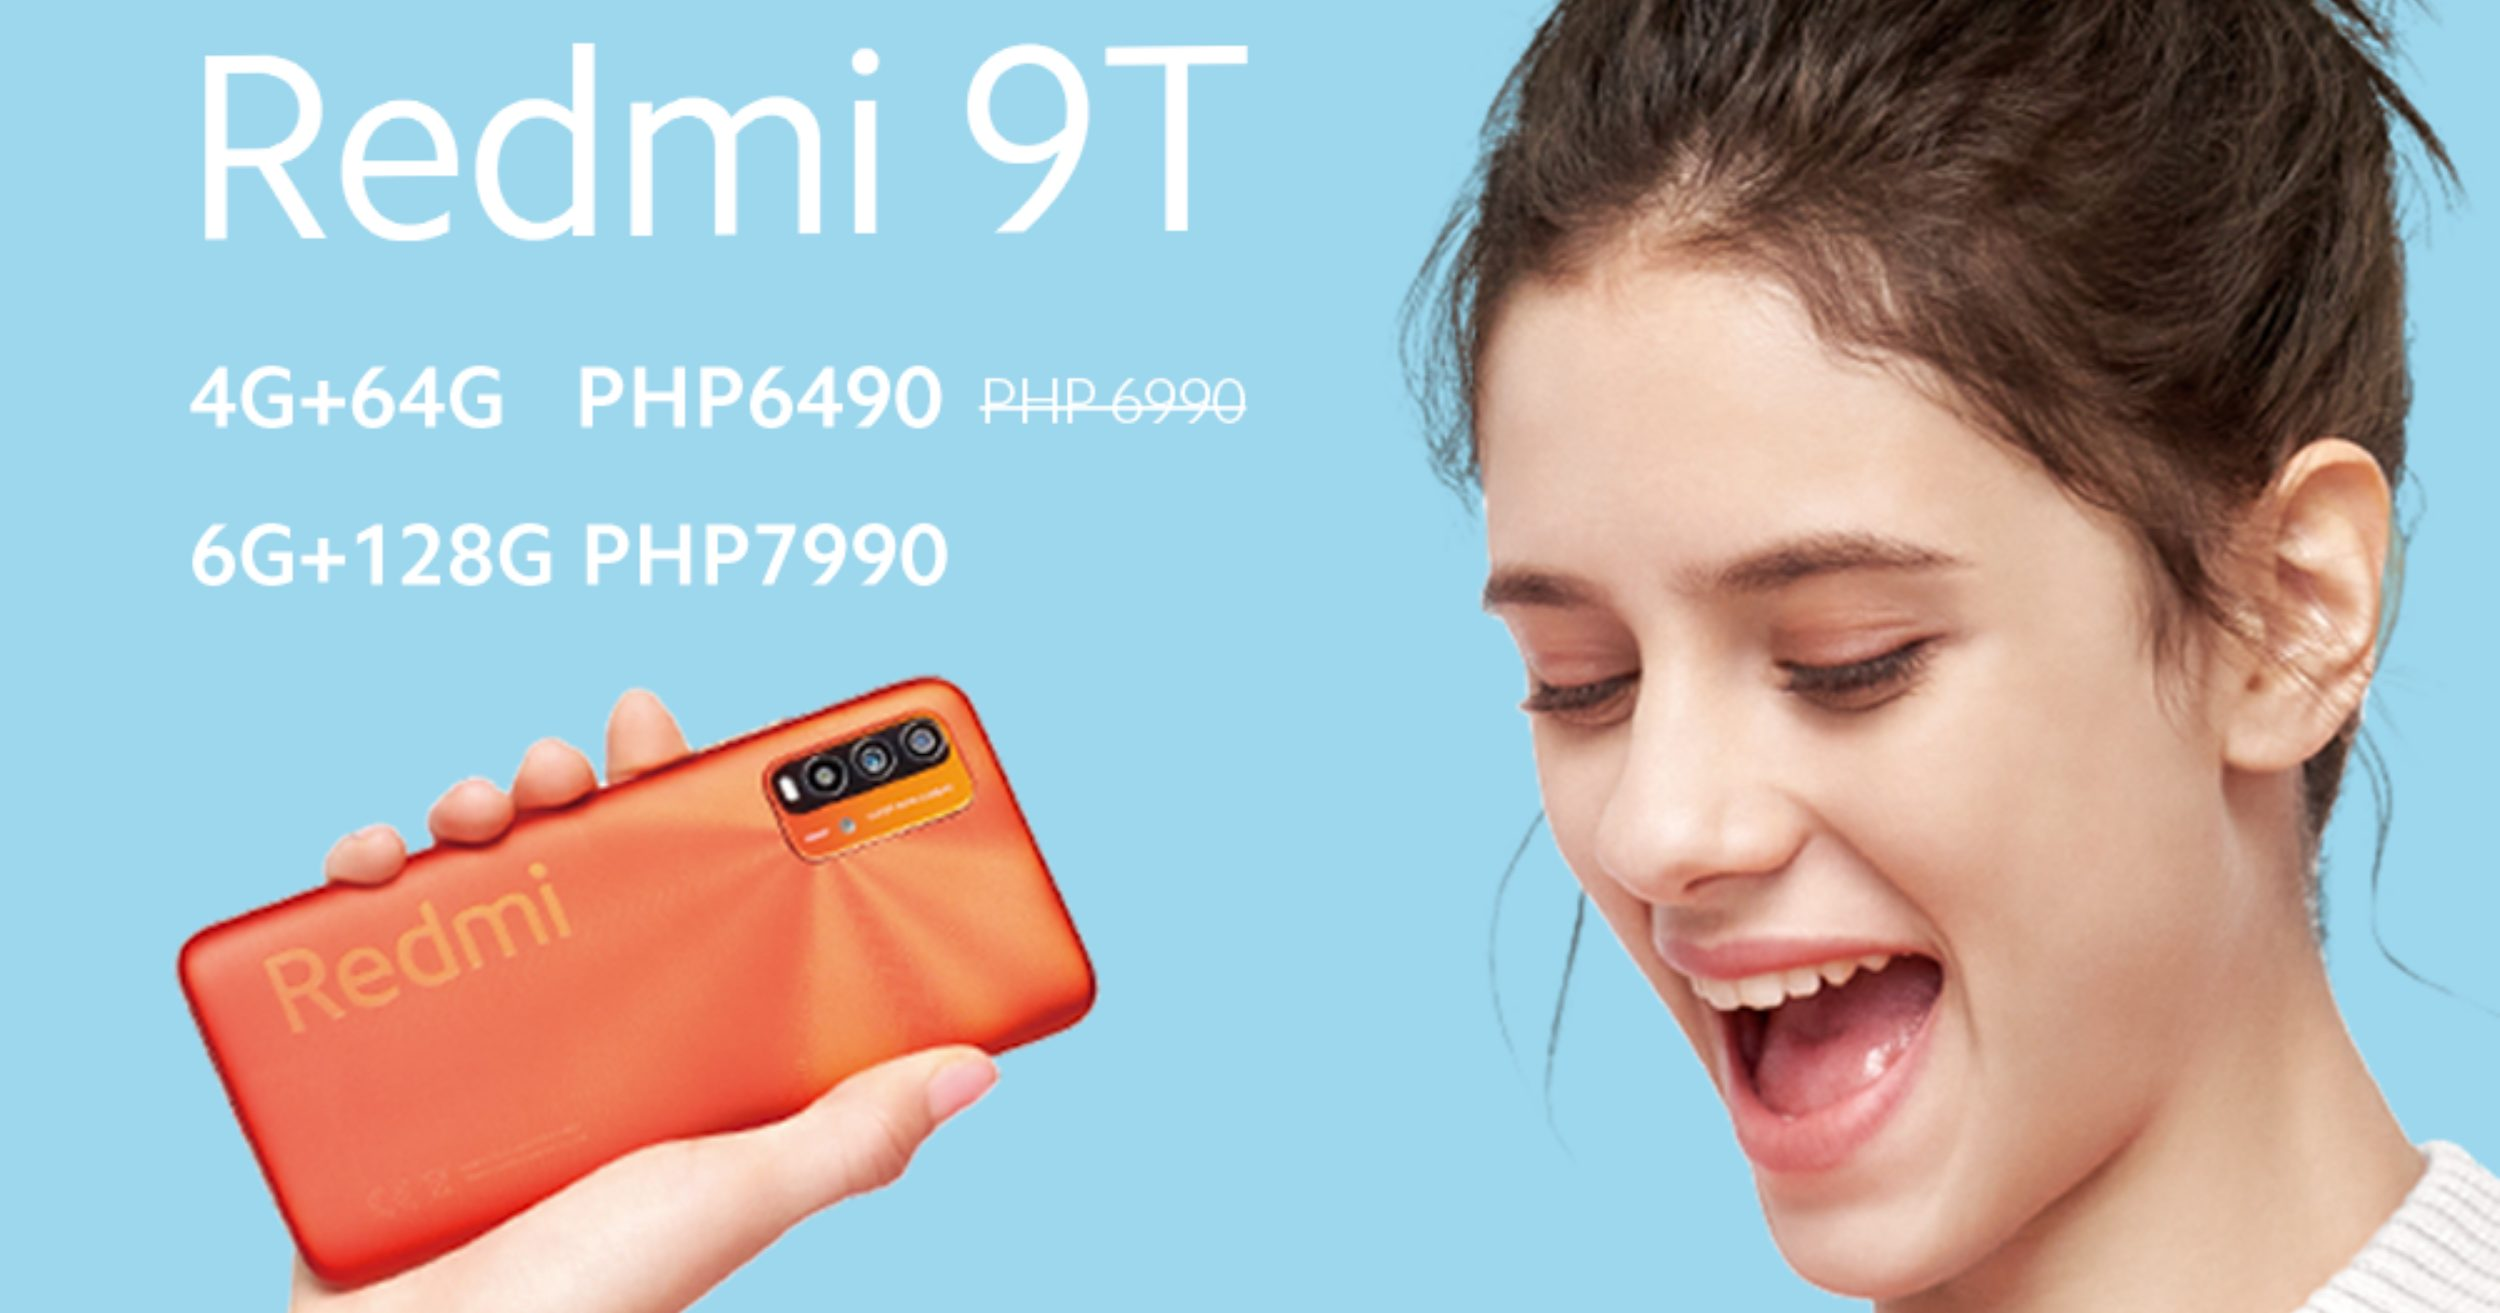 redmi-9t-official-price-specs-release-date-availability-philippines-ph